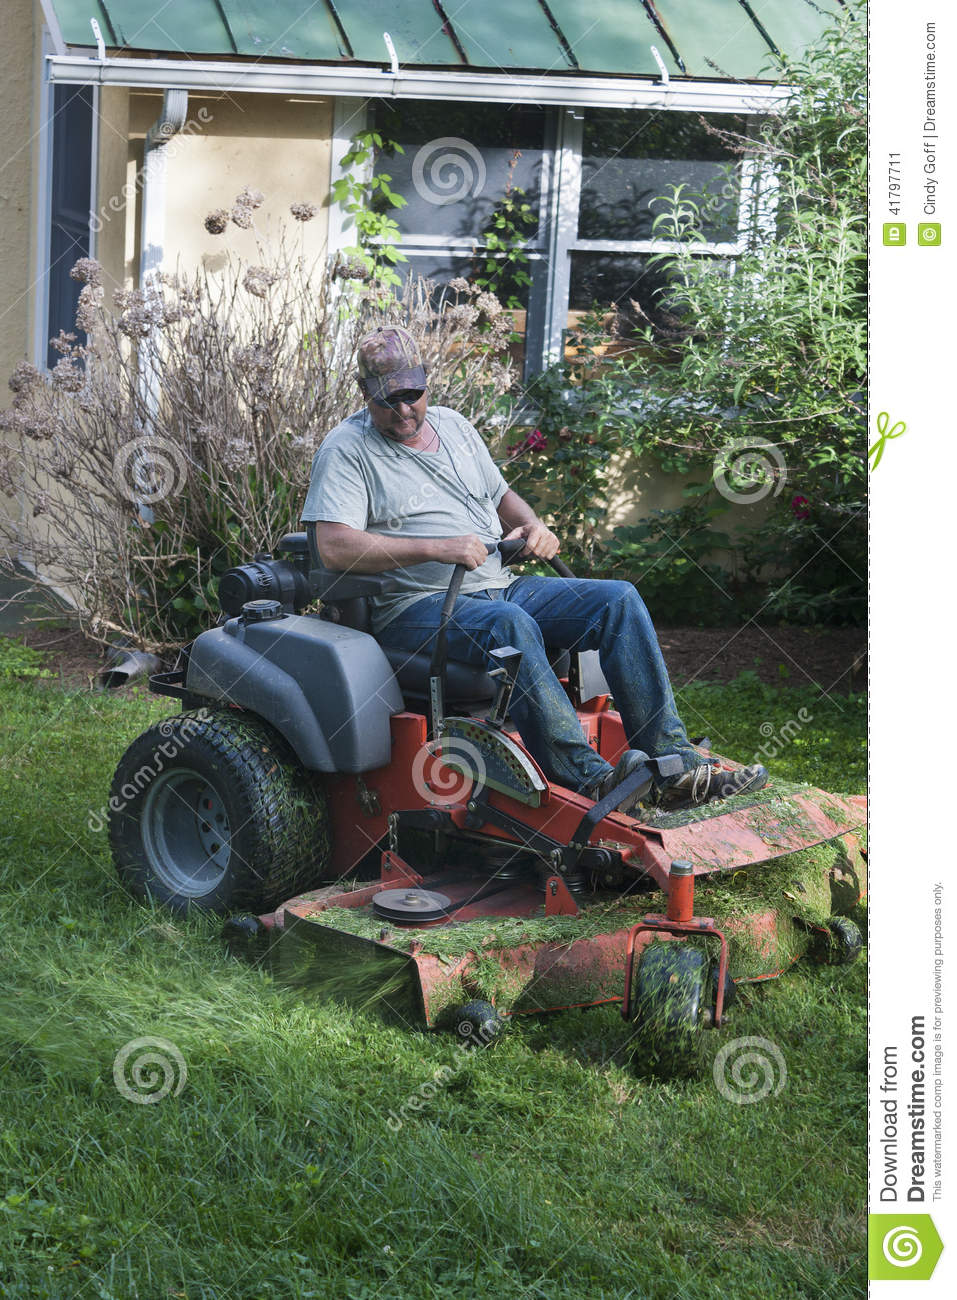 Landscaper on riding lawn mower stock photo image 41797711 for Lawn mower cutting grass